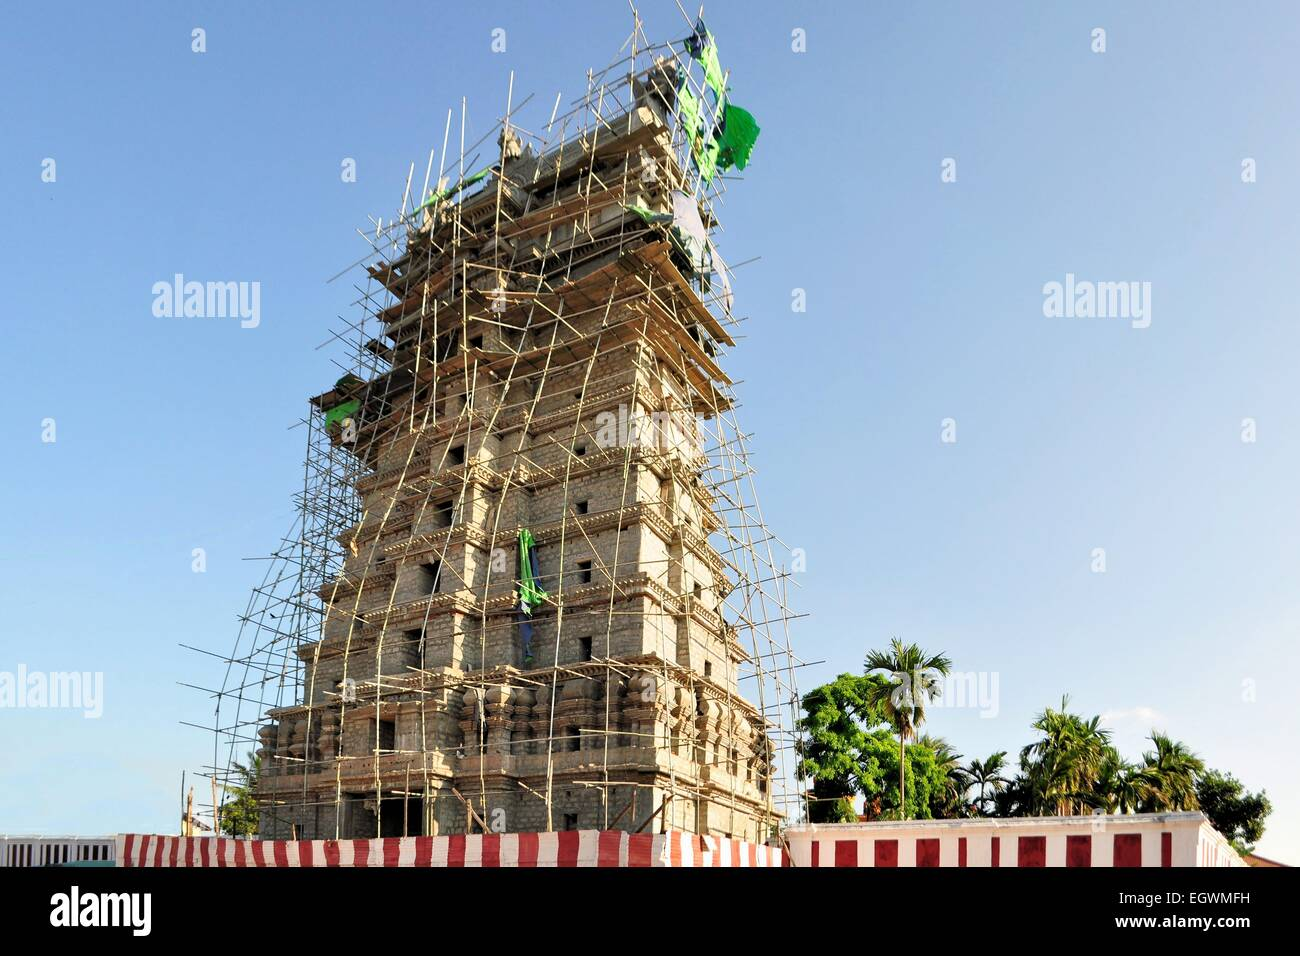 Indian Construction Site with Bamboo Scaffolding - Stock Image